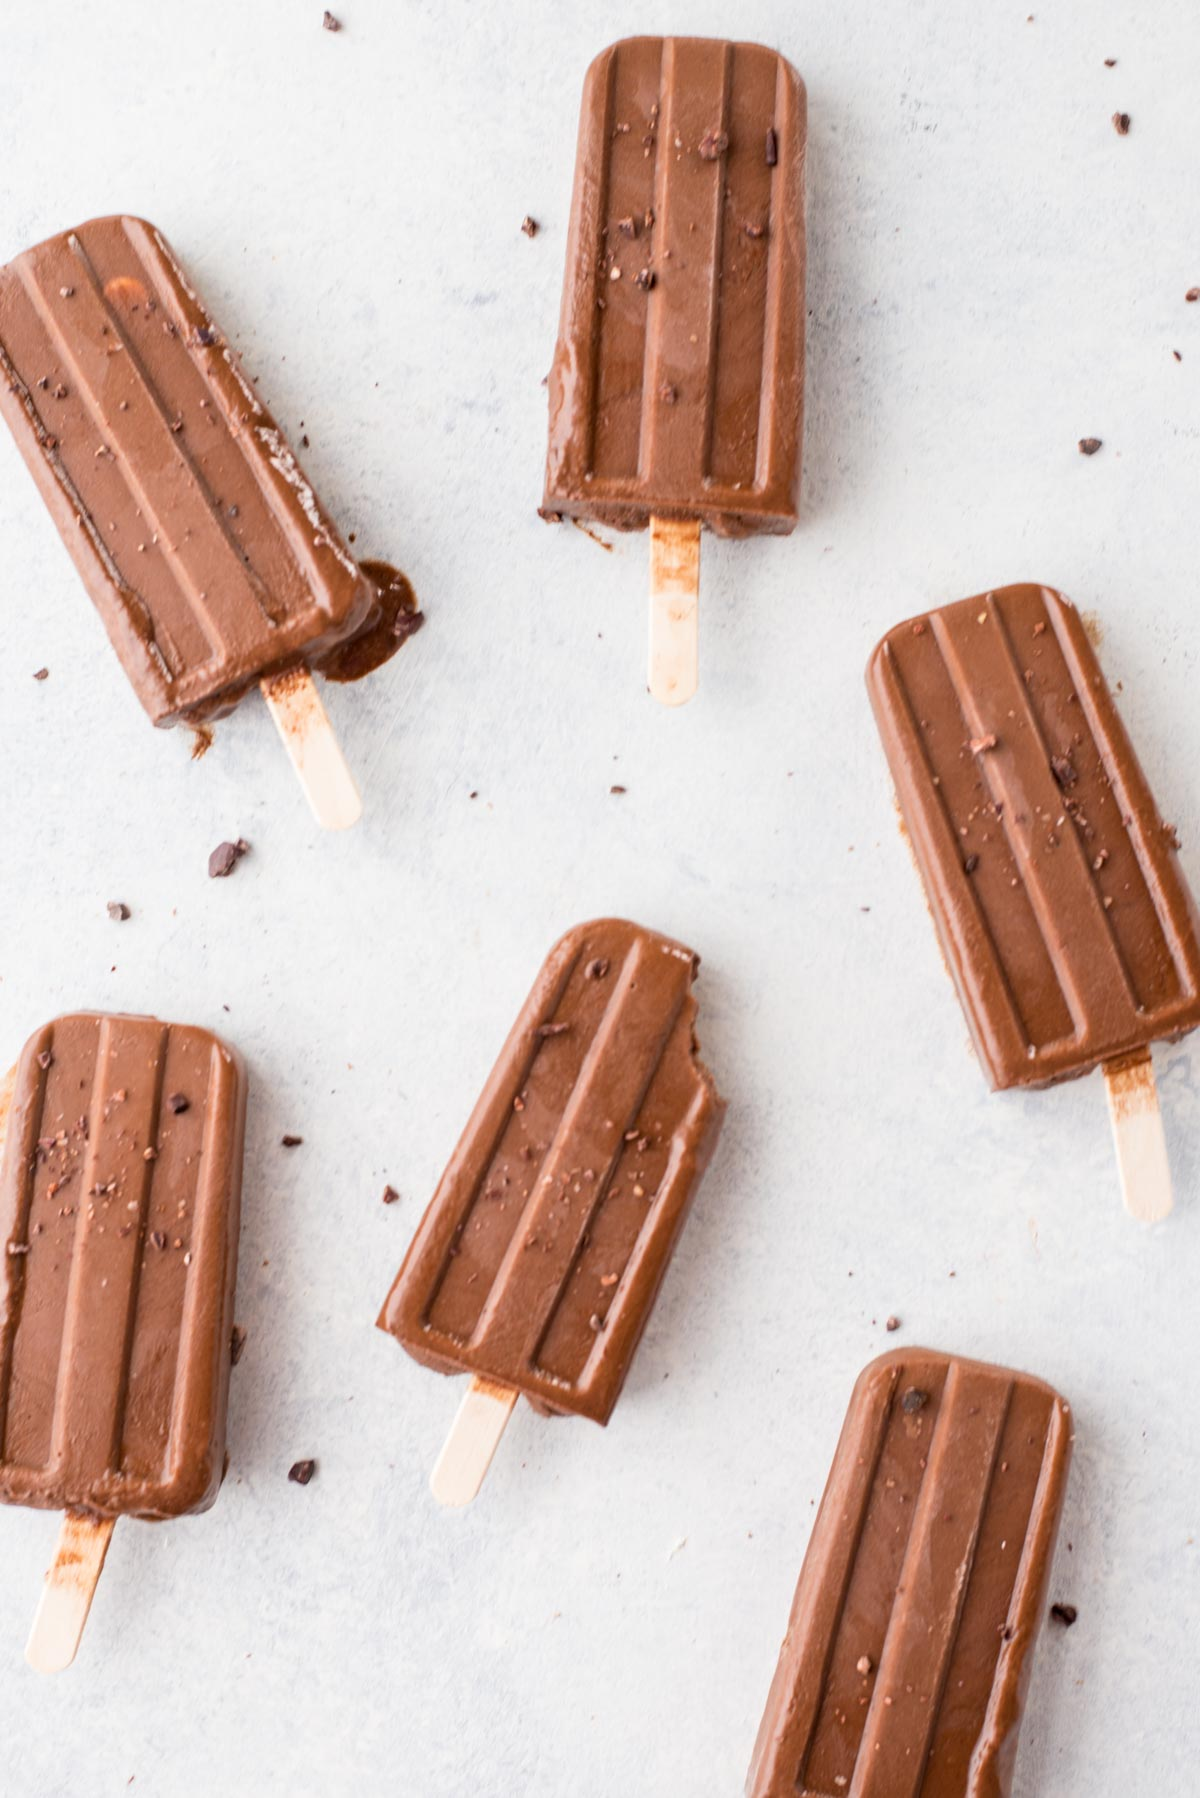 Fudgesicles loaded with hormonal balancing vital nutrients that will end all cravings.